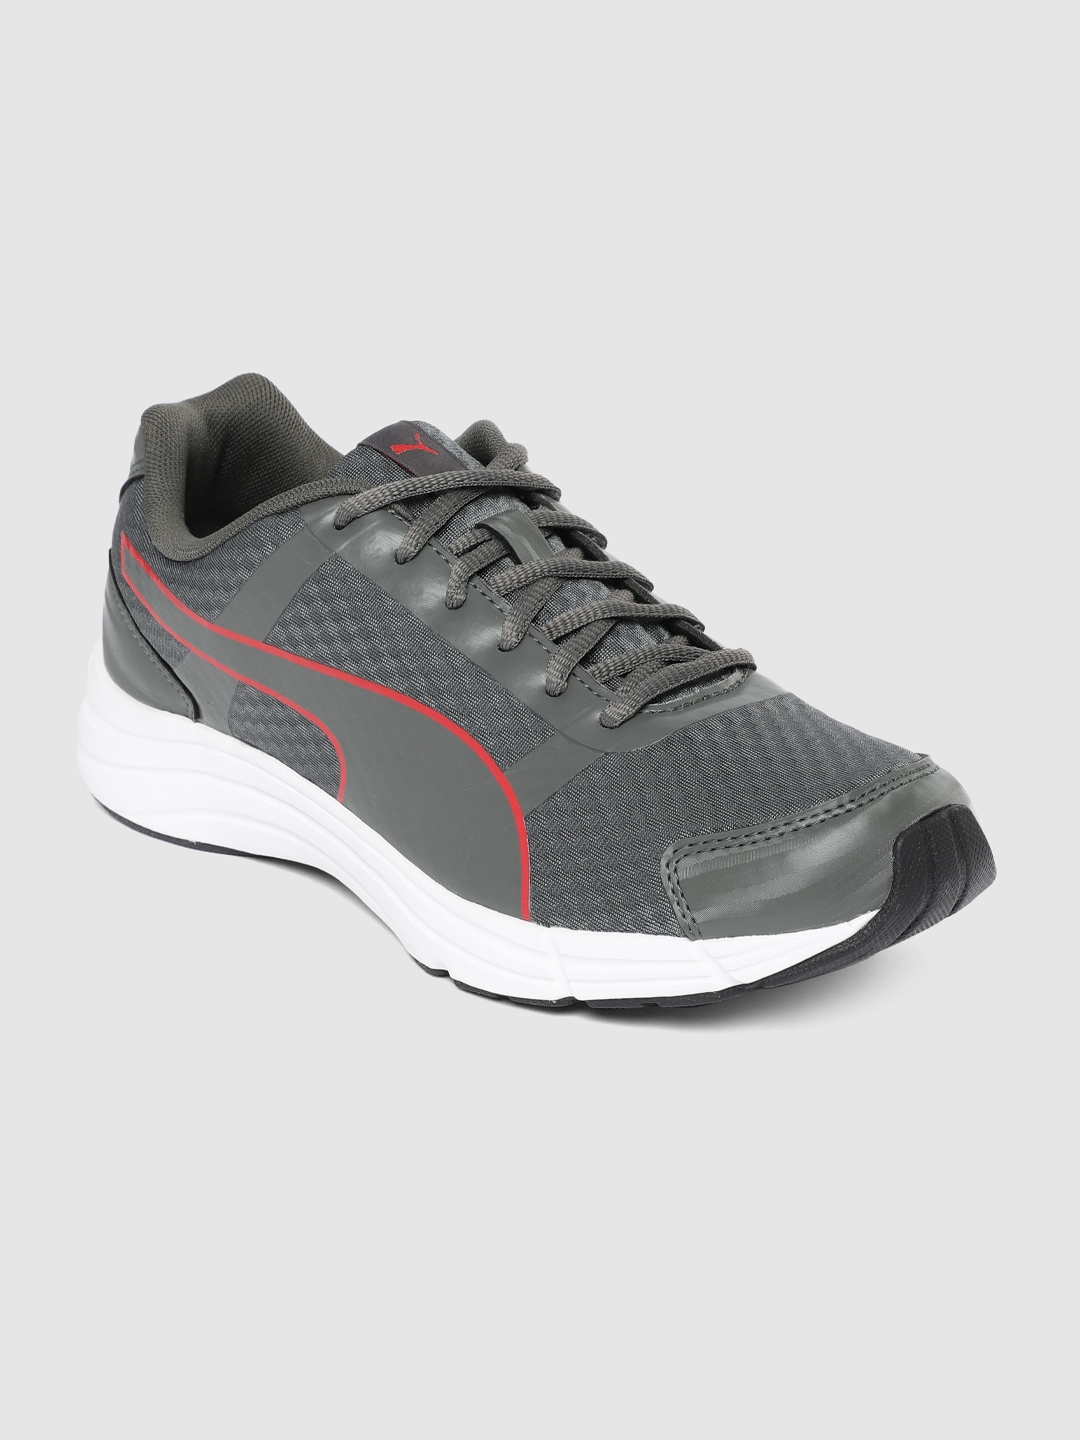 Puma Men Grey Neutron IDP Running Shoes